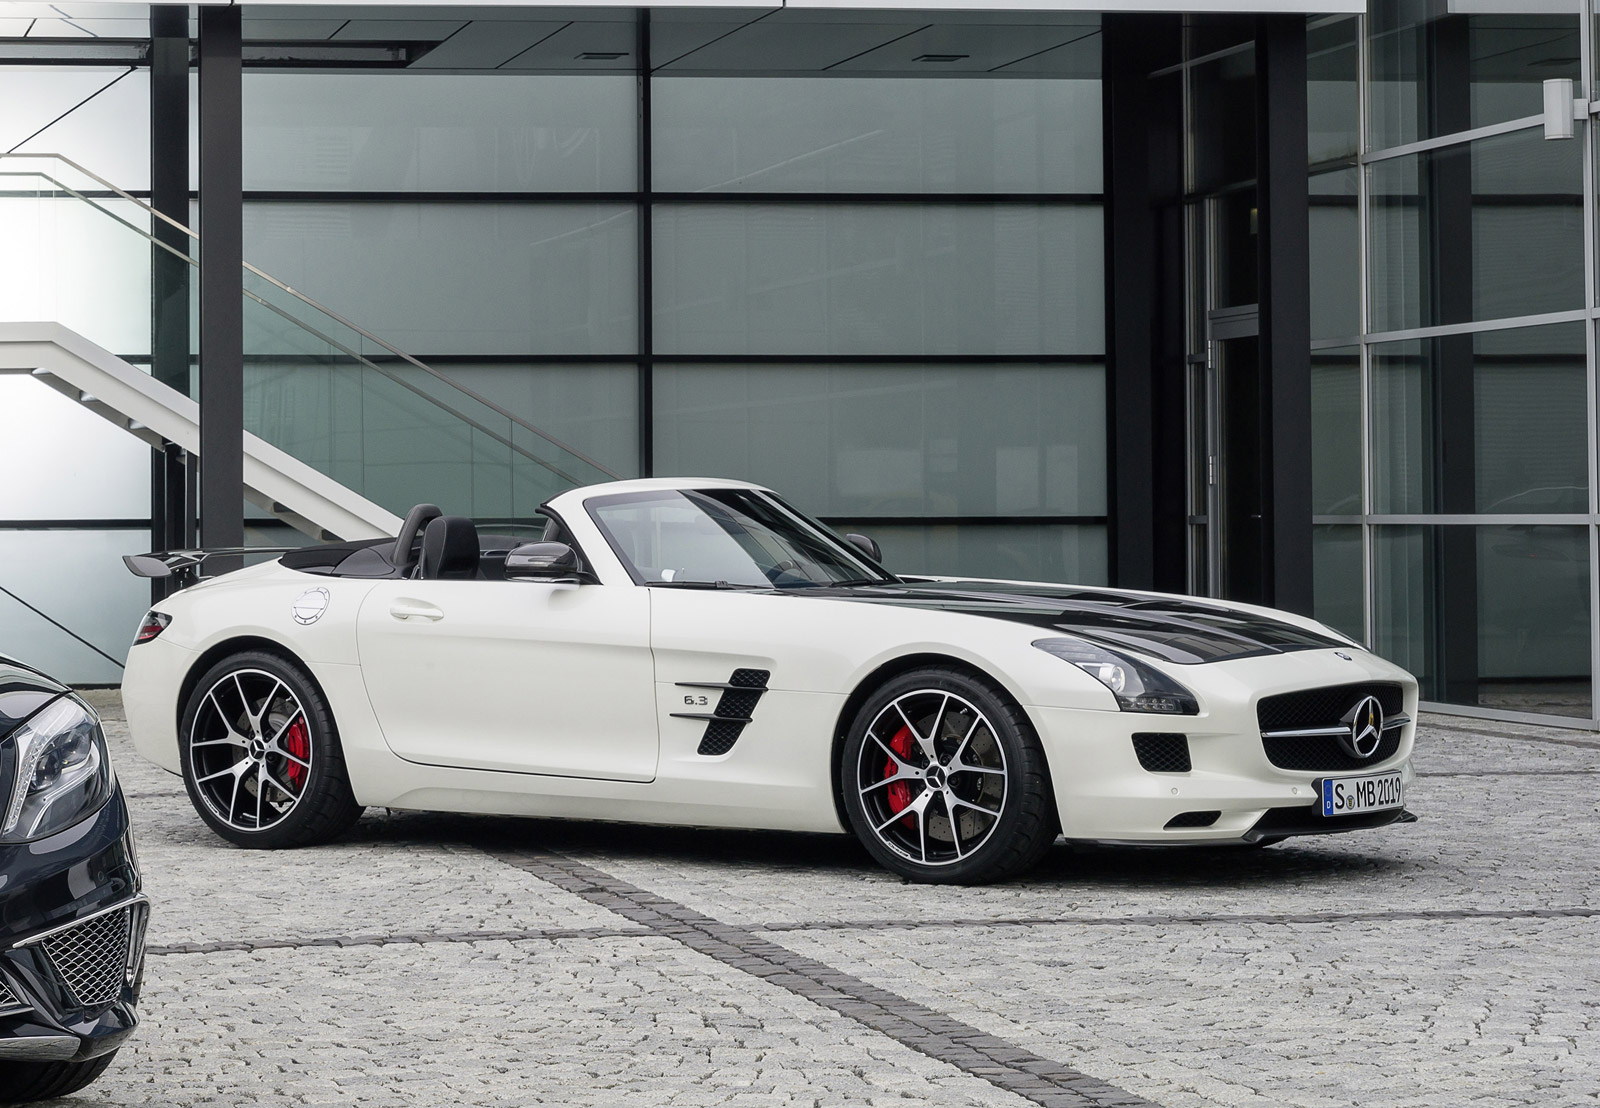 2015 mercedes benz sls amg review ratings specs prices for Silverlit mercedes benz sls amg